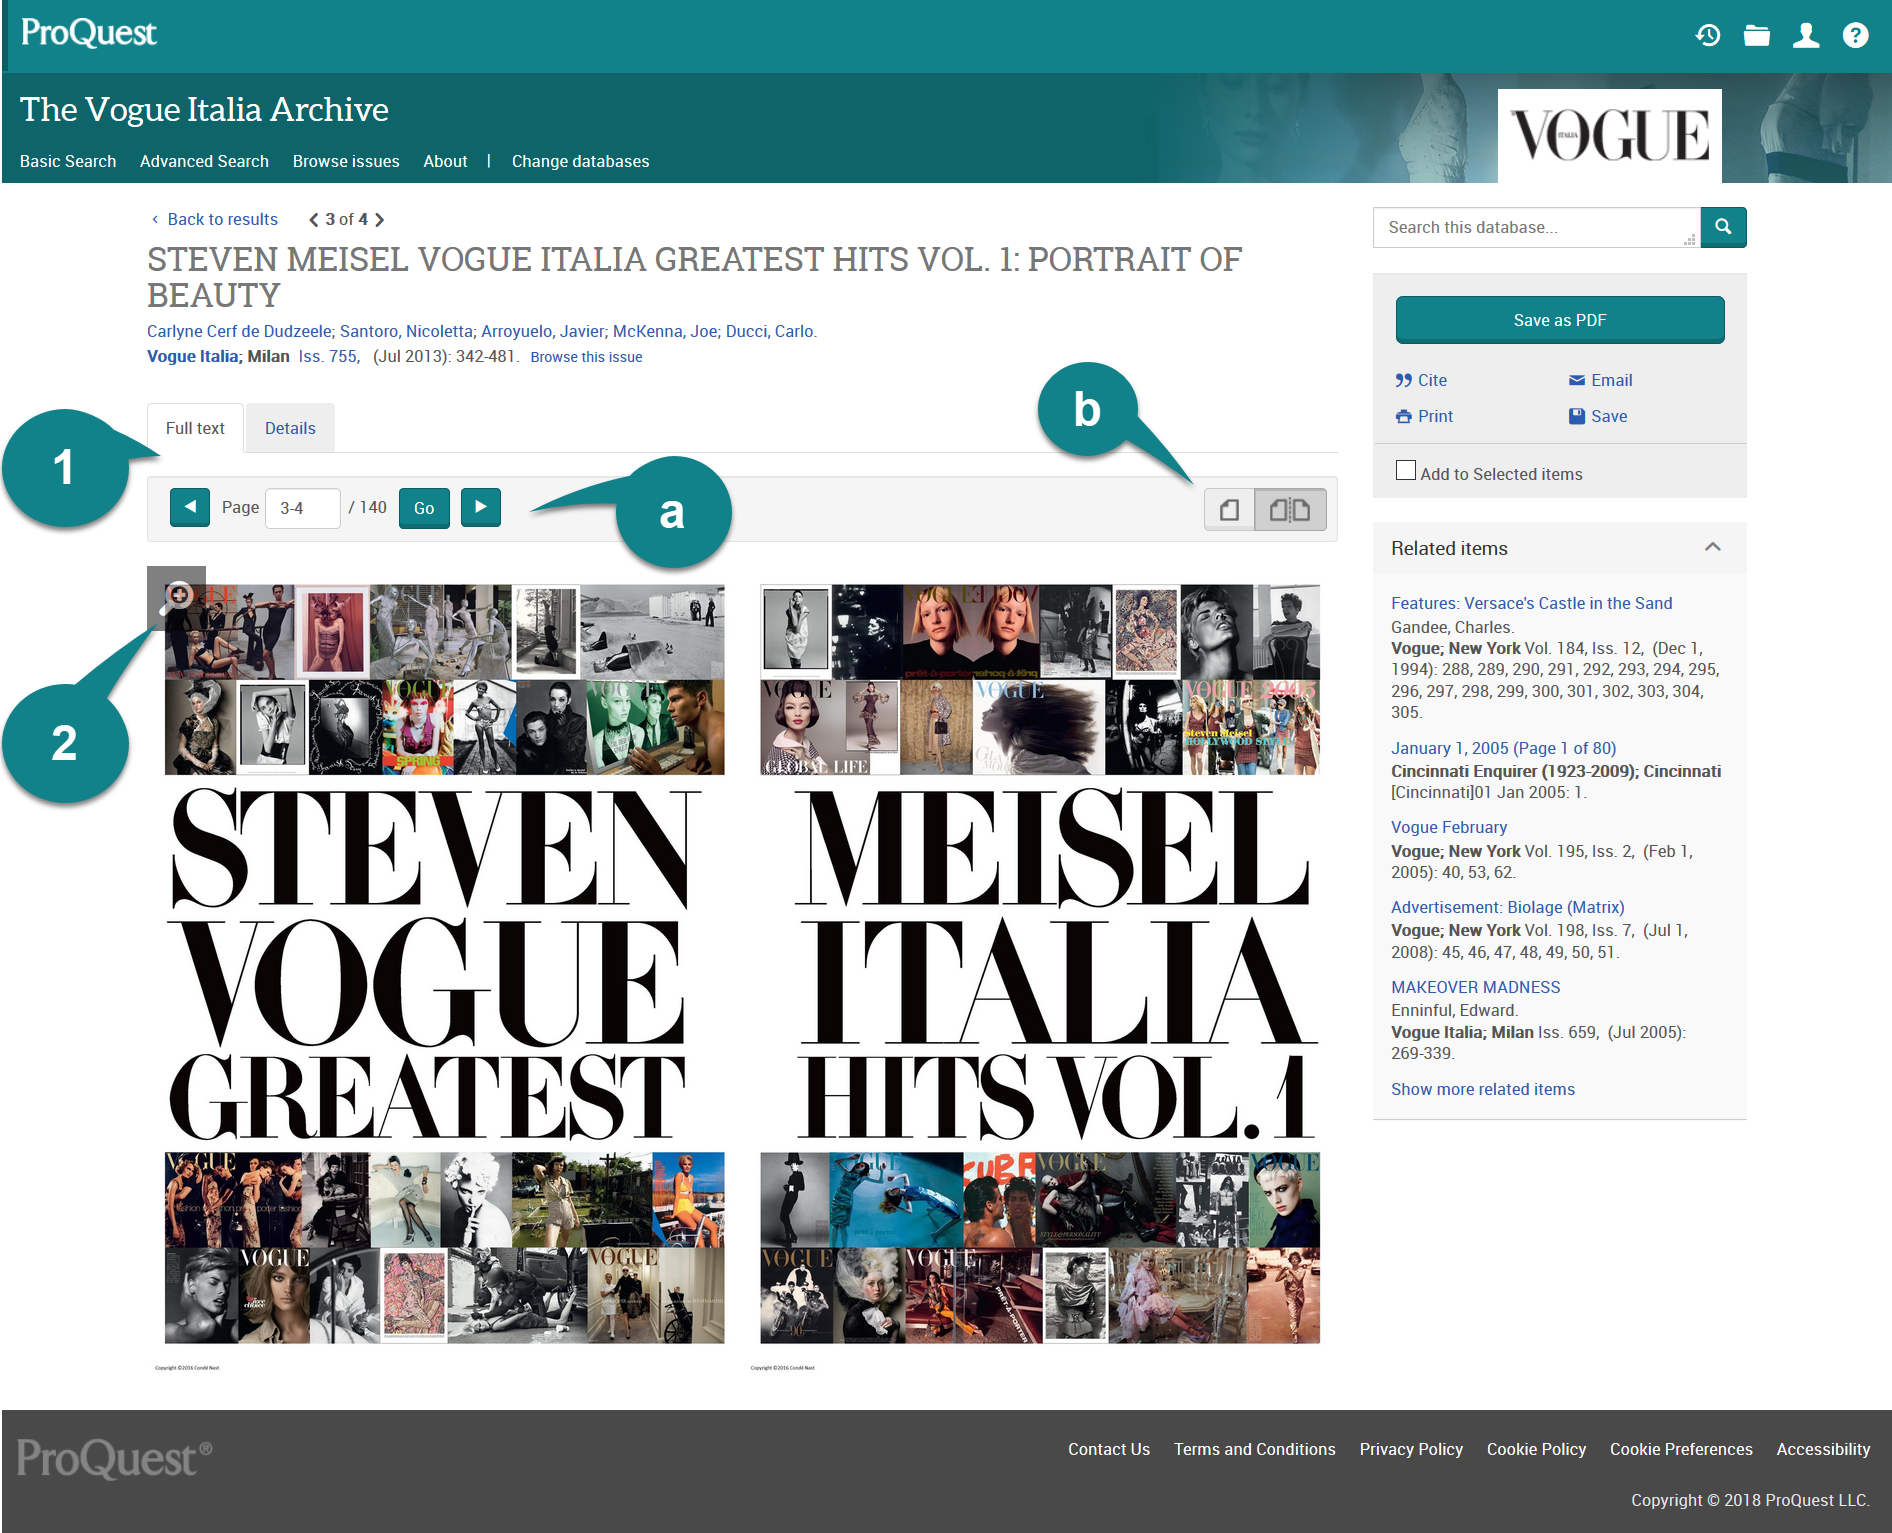 Full record view from Vogue Italia